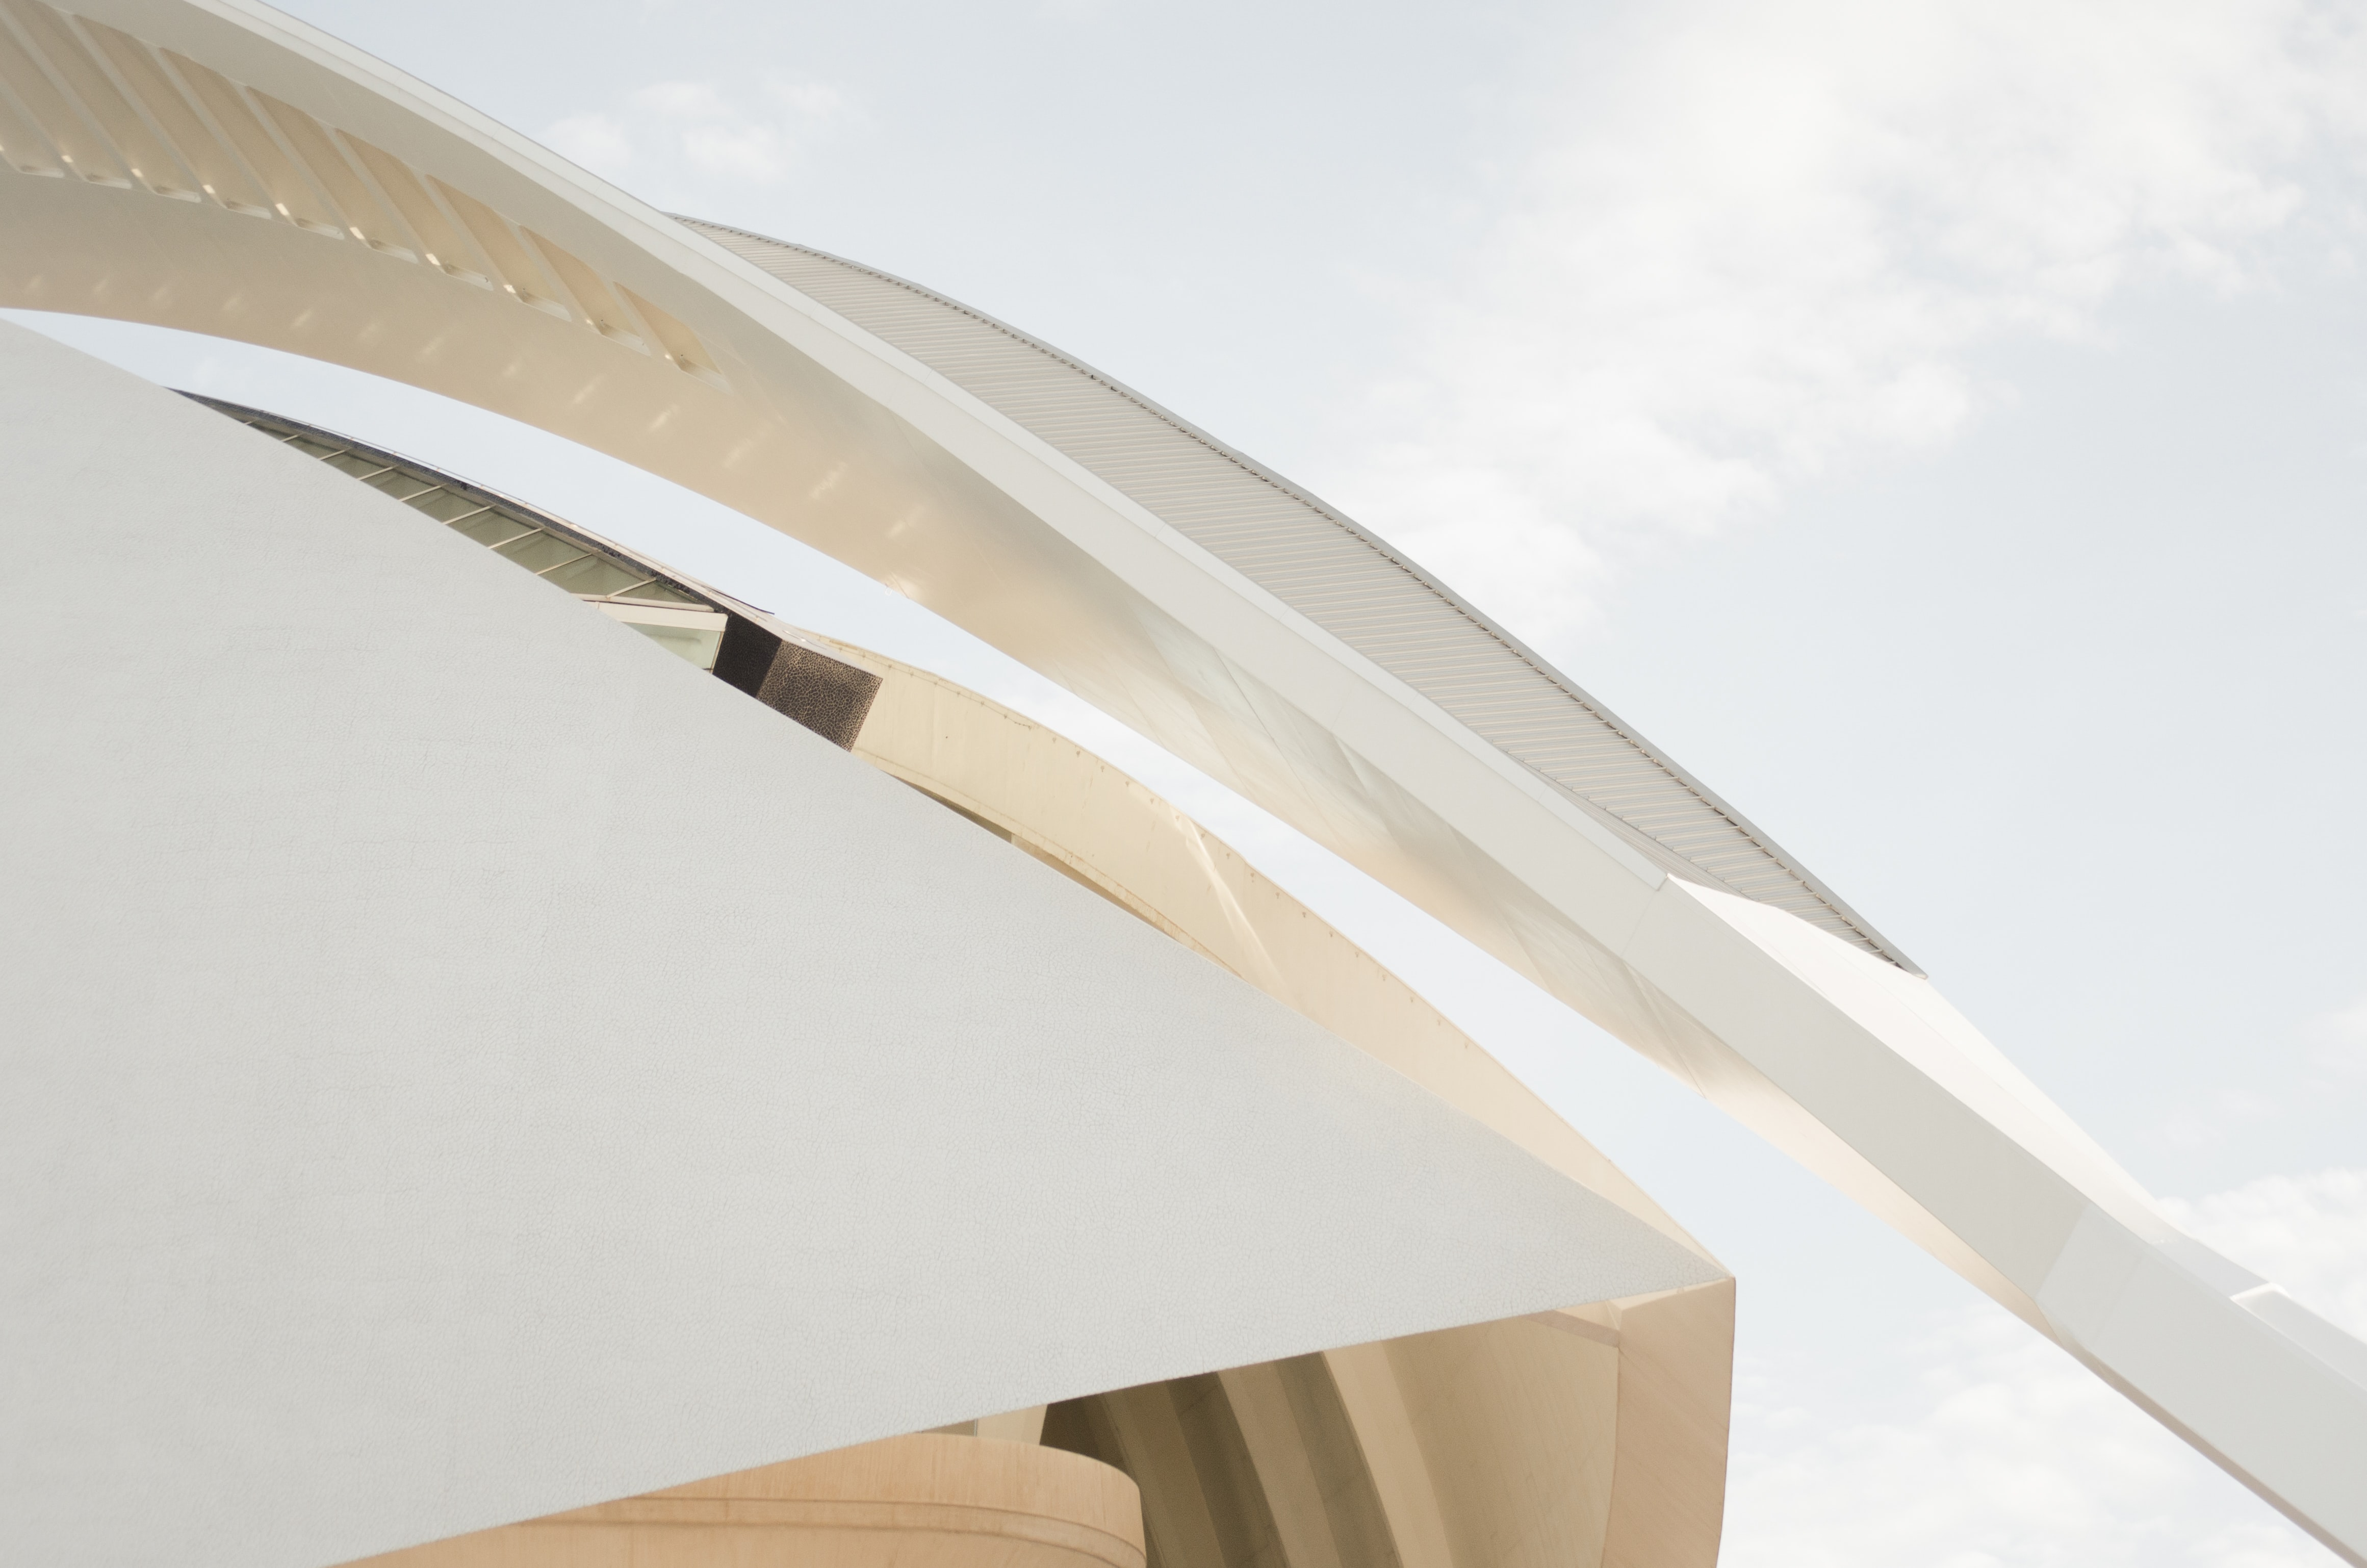 A long arch at the edge of a modern white facade